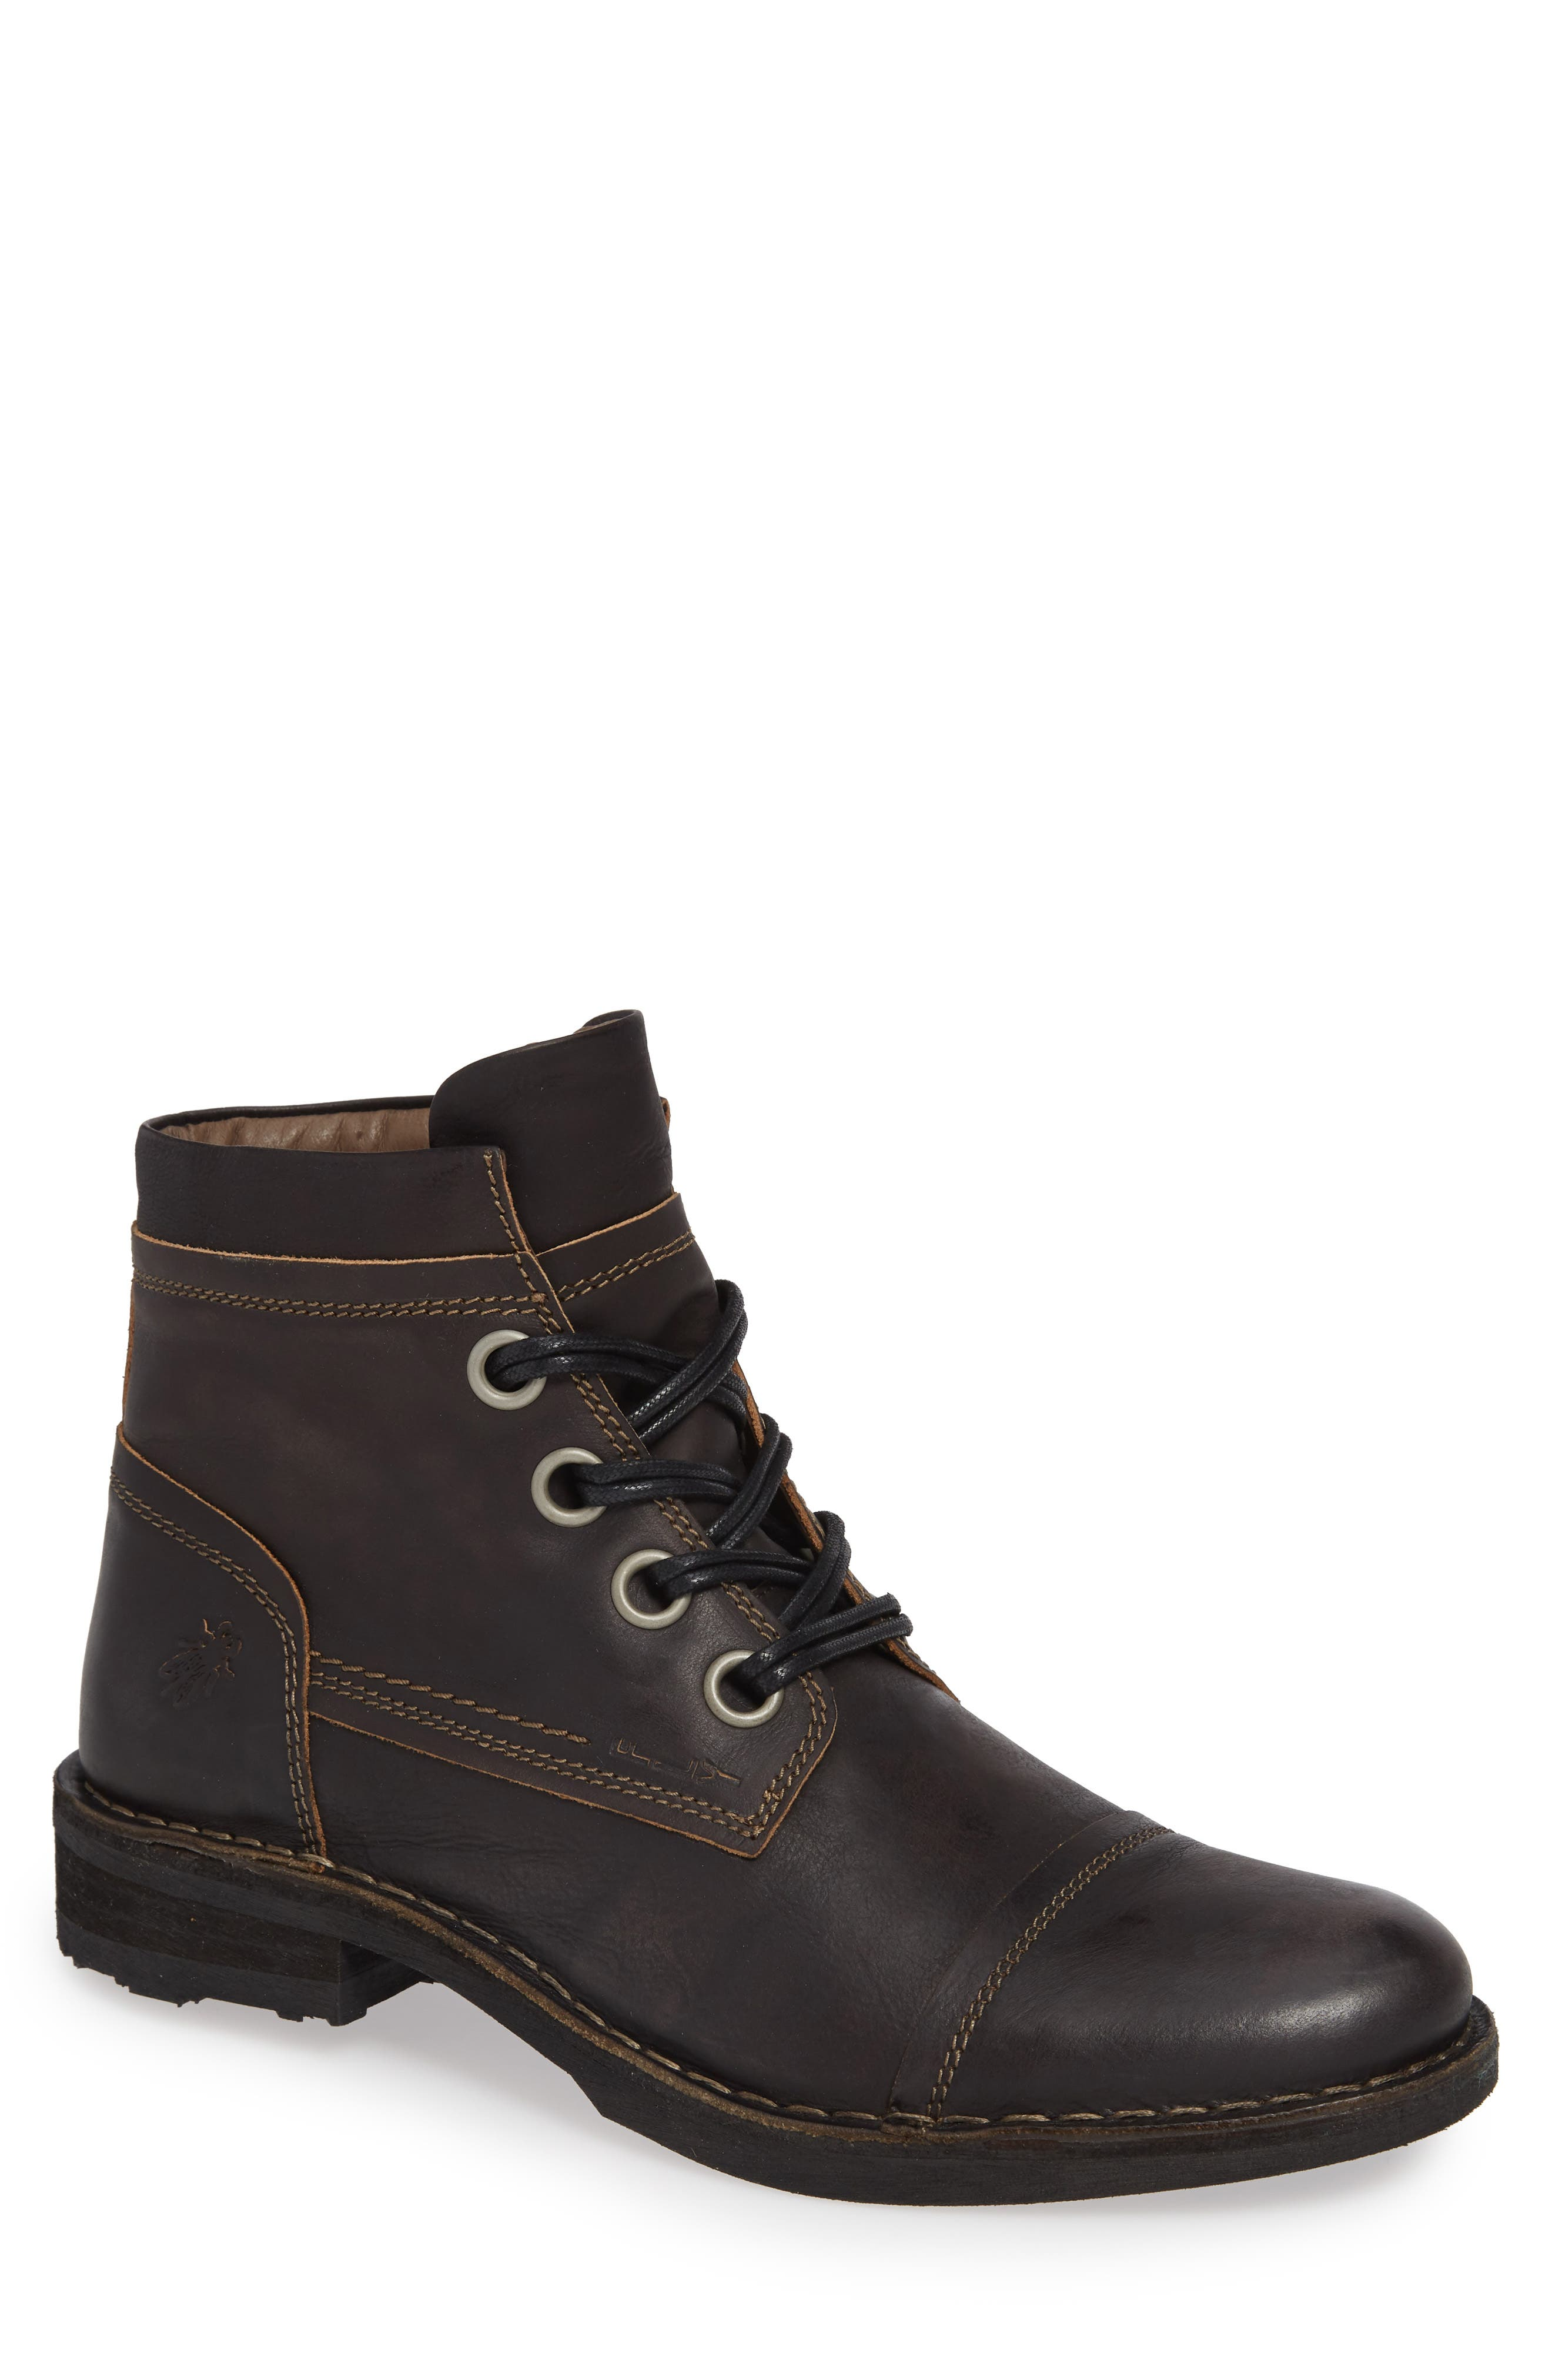 Rize Cap Toe Boot,                             Main thumbnail 1, color,                             BLACK SEBTA